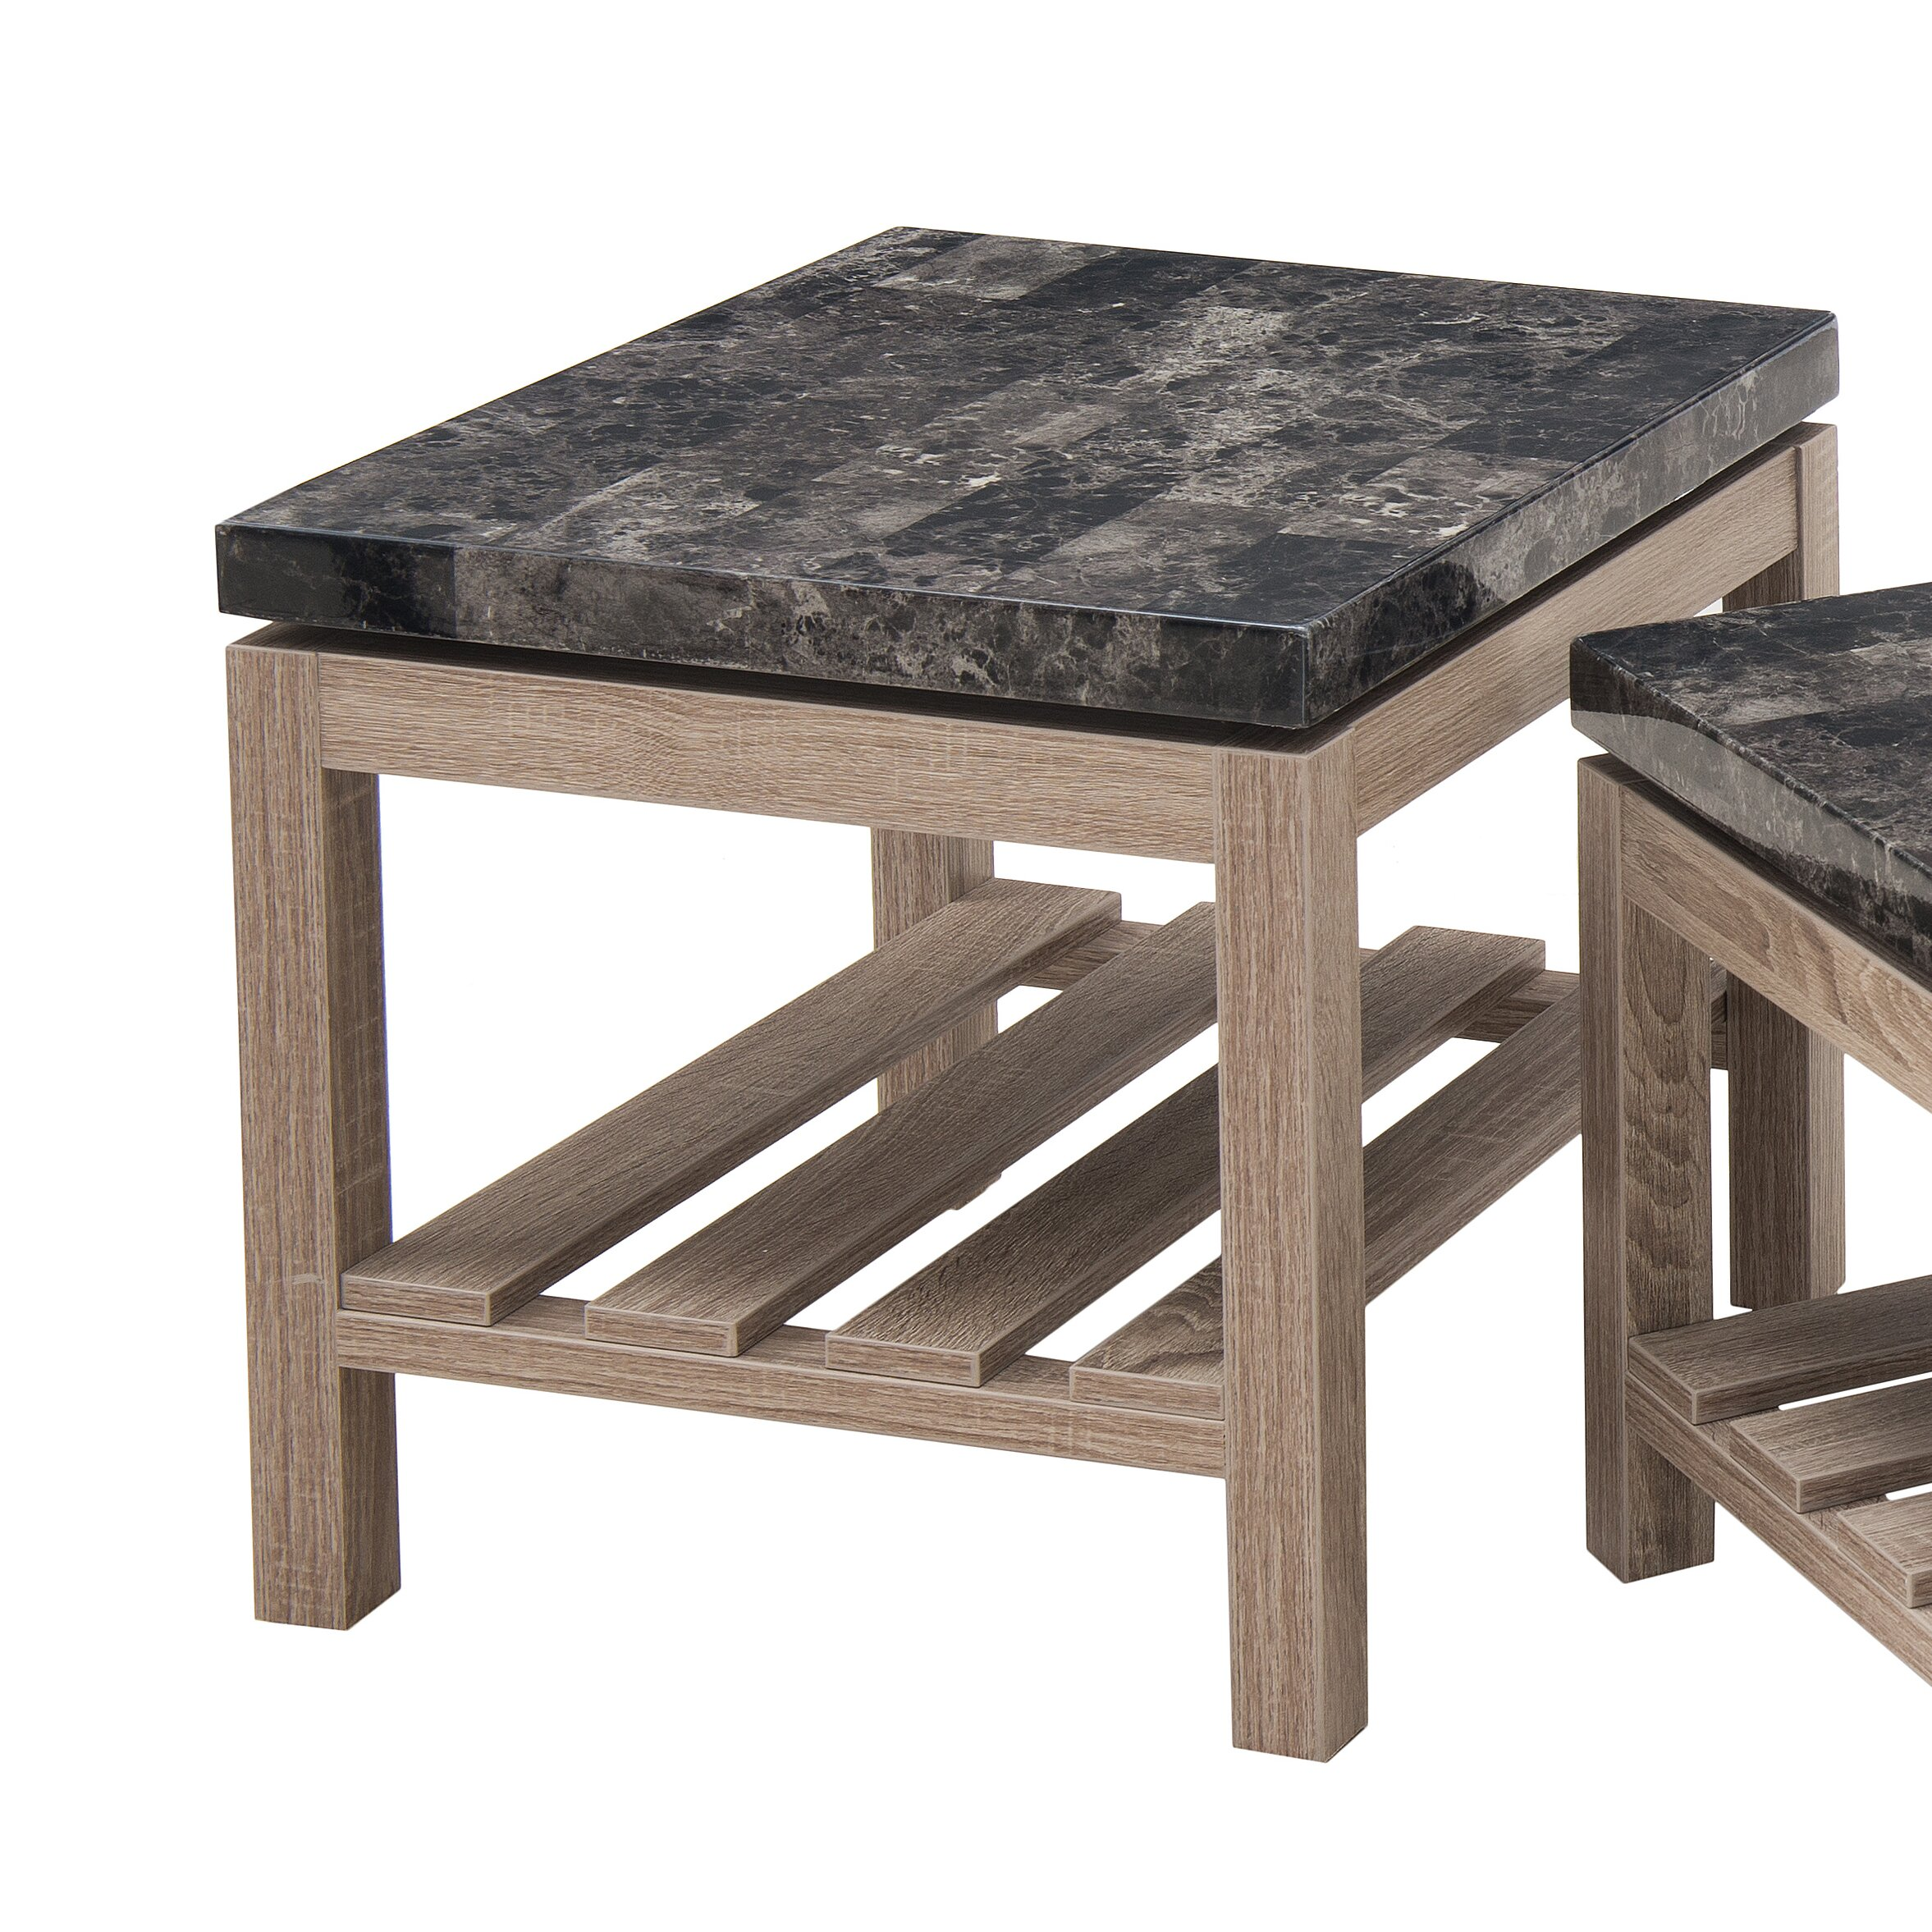 Modern Farmhouse Coffee Table: Laurel Foundry Modern Farmhouse Ambroise Coffee Table Set